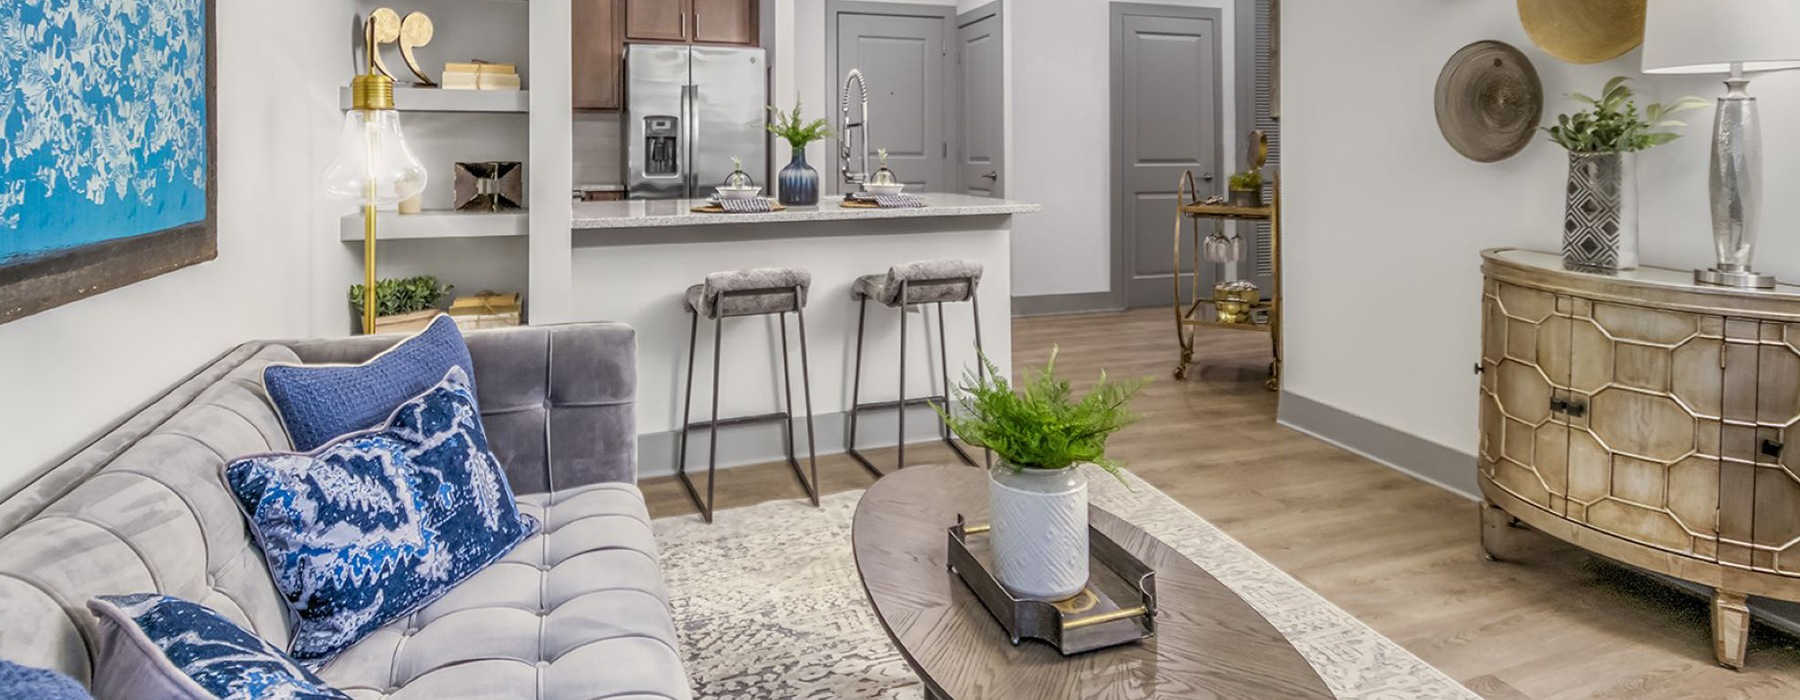 spacious living room with modern decor and providing easy access to the kitchen area